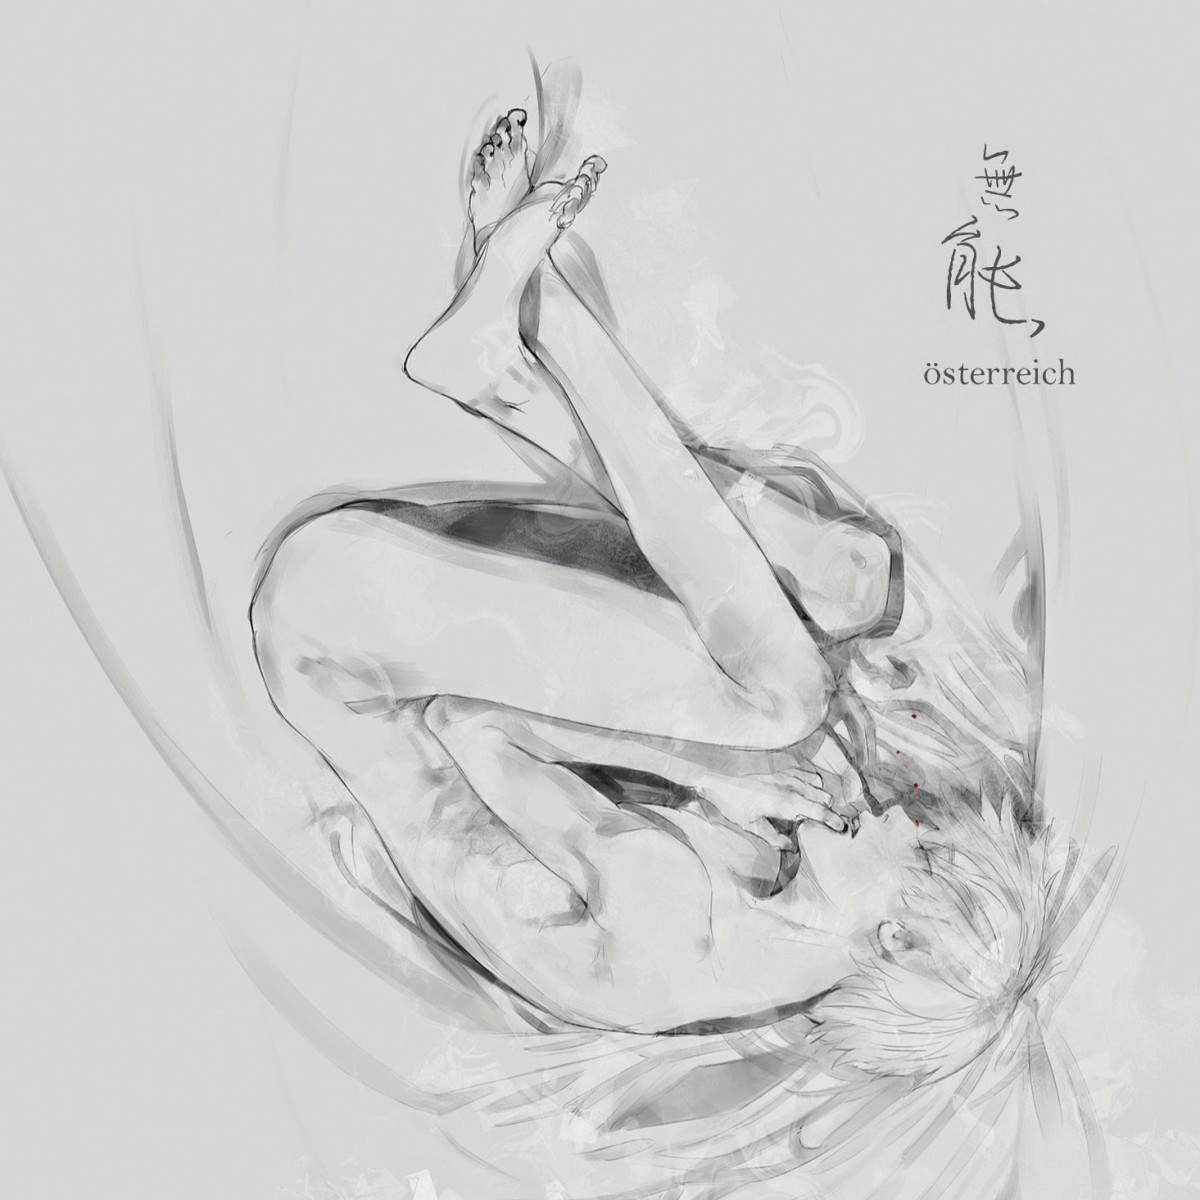 Ishida's drawing for the cover of osterreich's album.